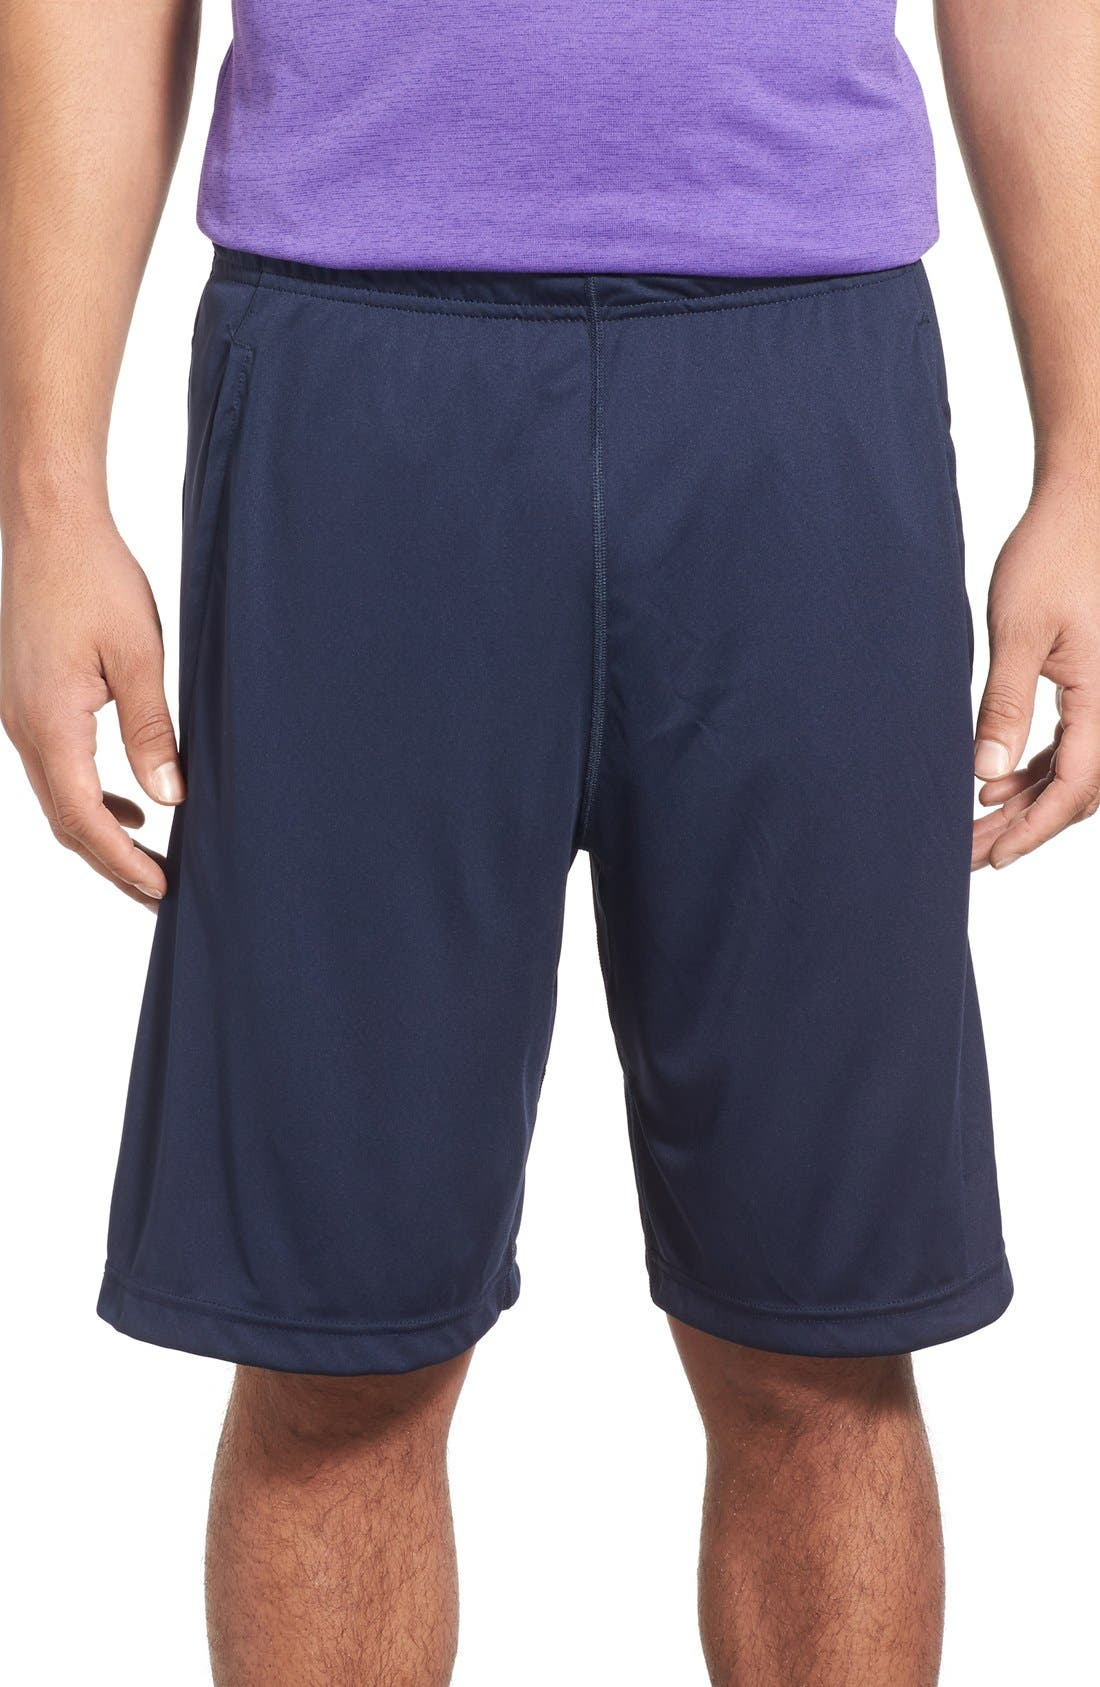 'Fly' Dri-FIT Training Shorts,                             Main thumbnail 20, color,